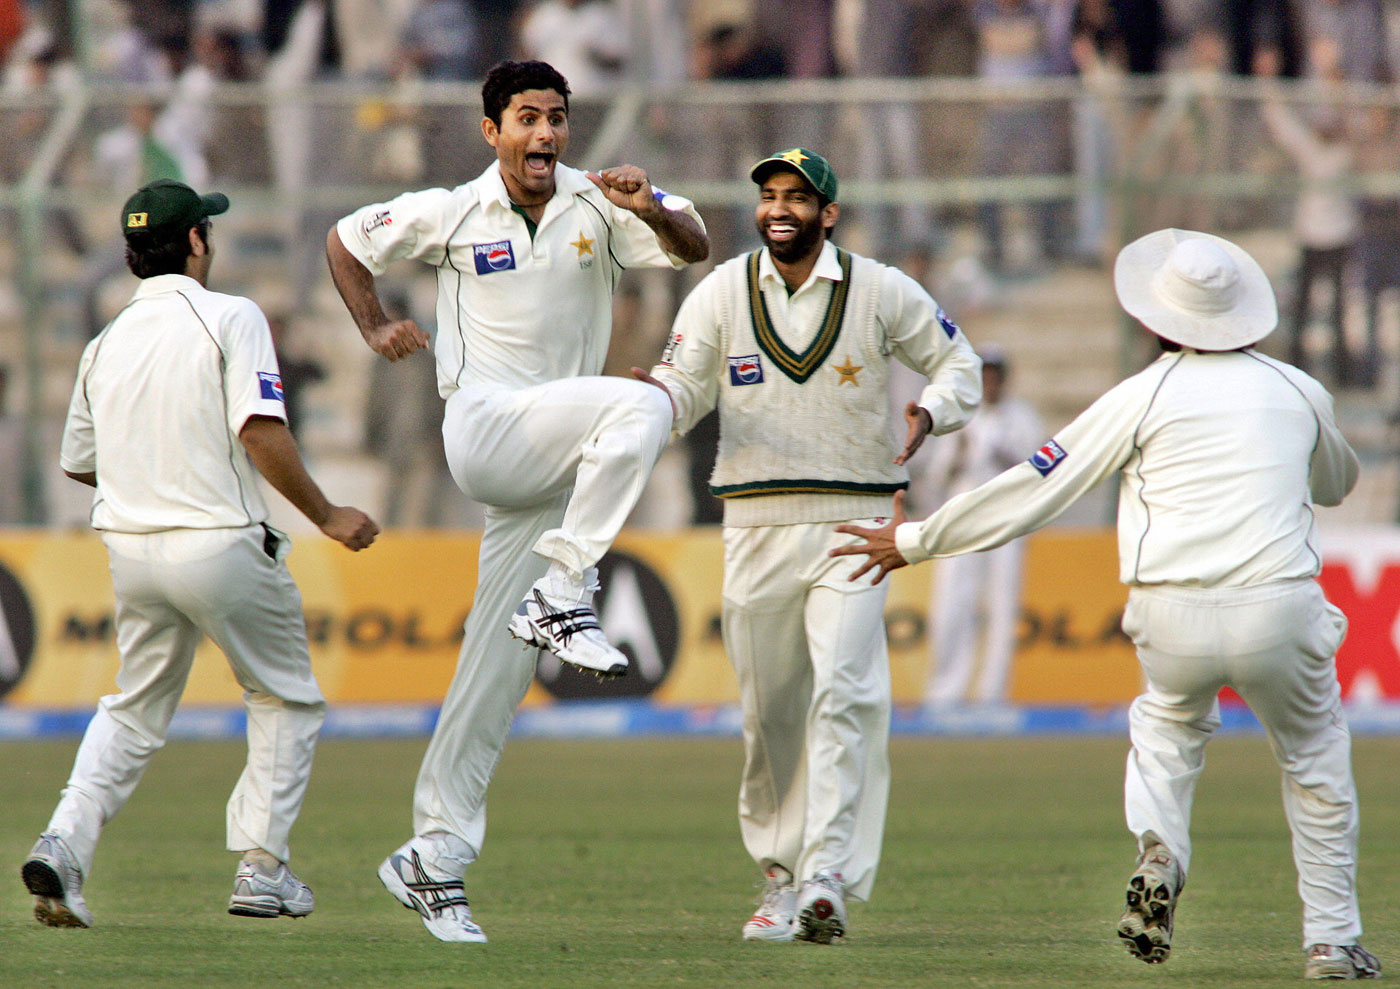 Abdul Razzaq is not shy of showing his excitement to the rest of his team-mates, Pakistan v India, 3rd Test, 1st day, Karachi, January 29 2006